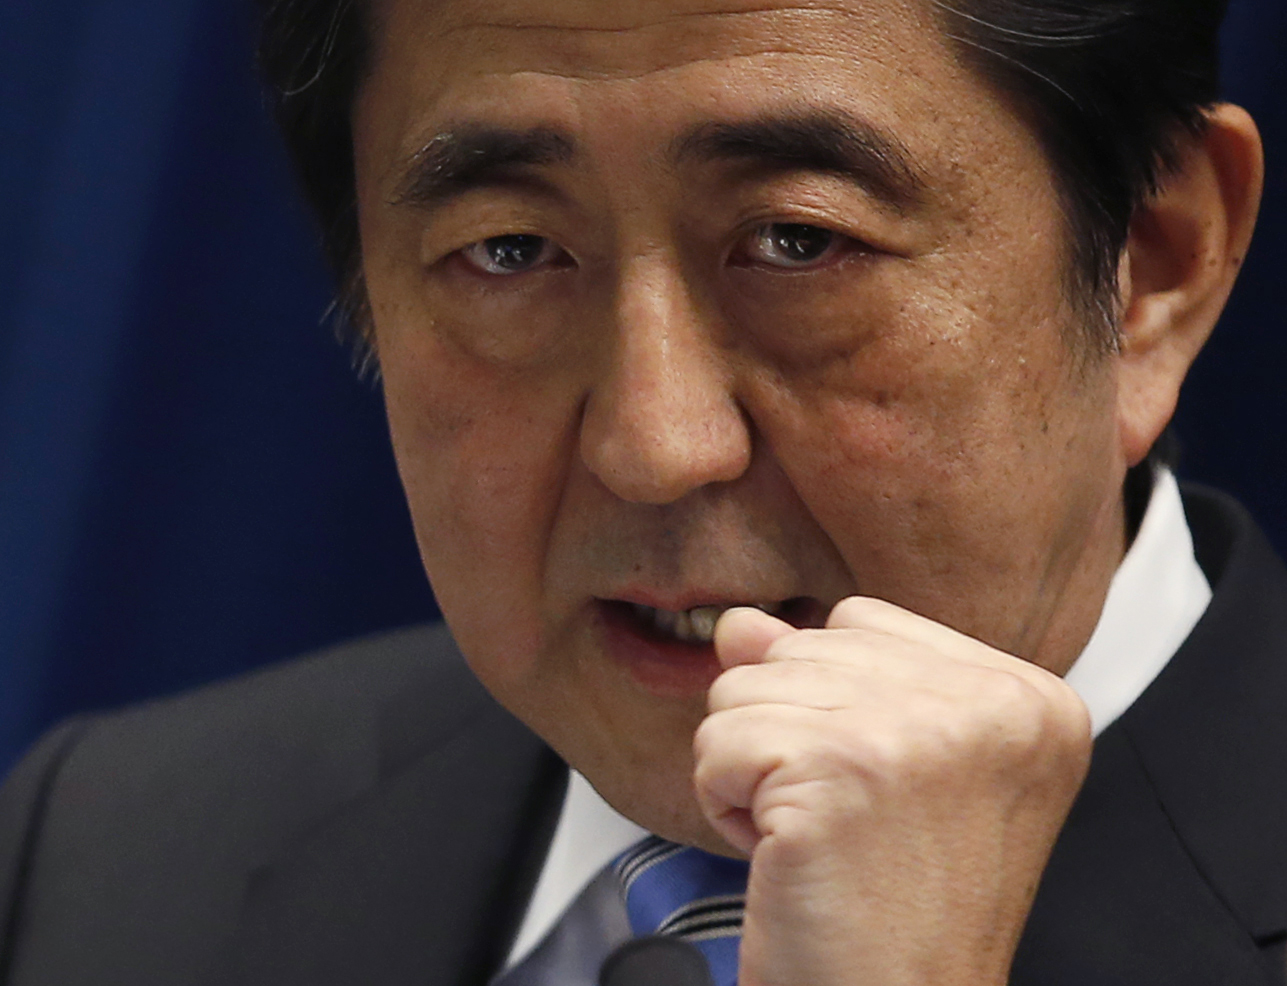 Japan's Leader Shinzo Abe to Dissolve Parliament and Call Election Two Years Early